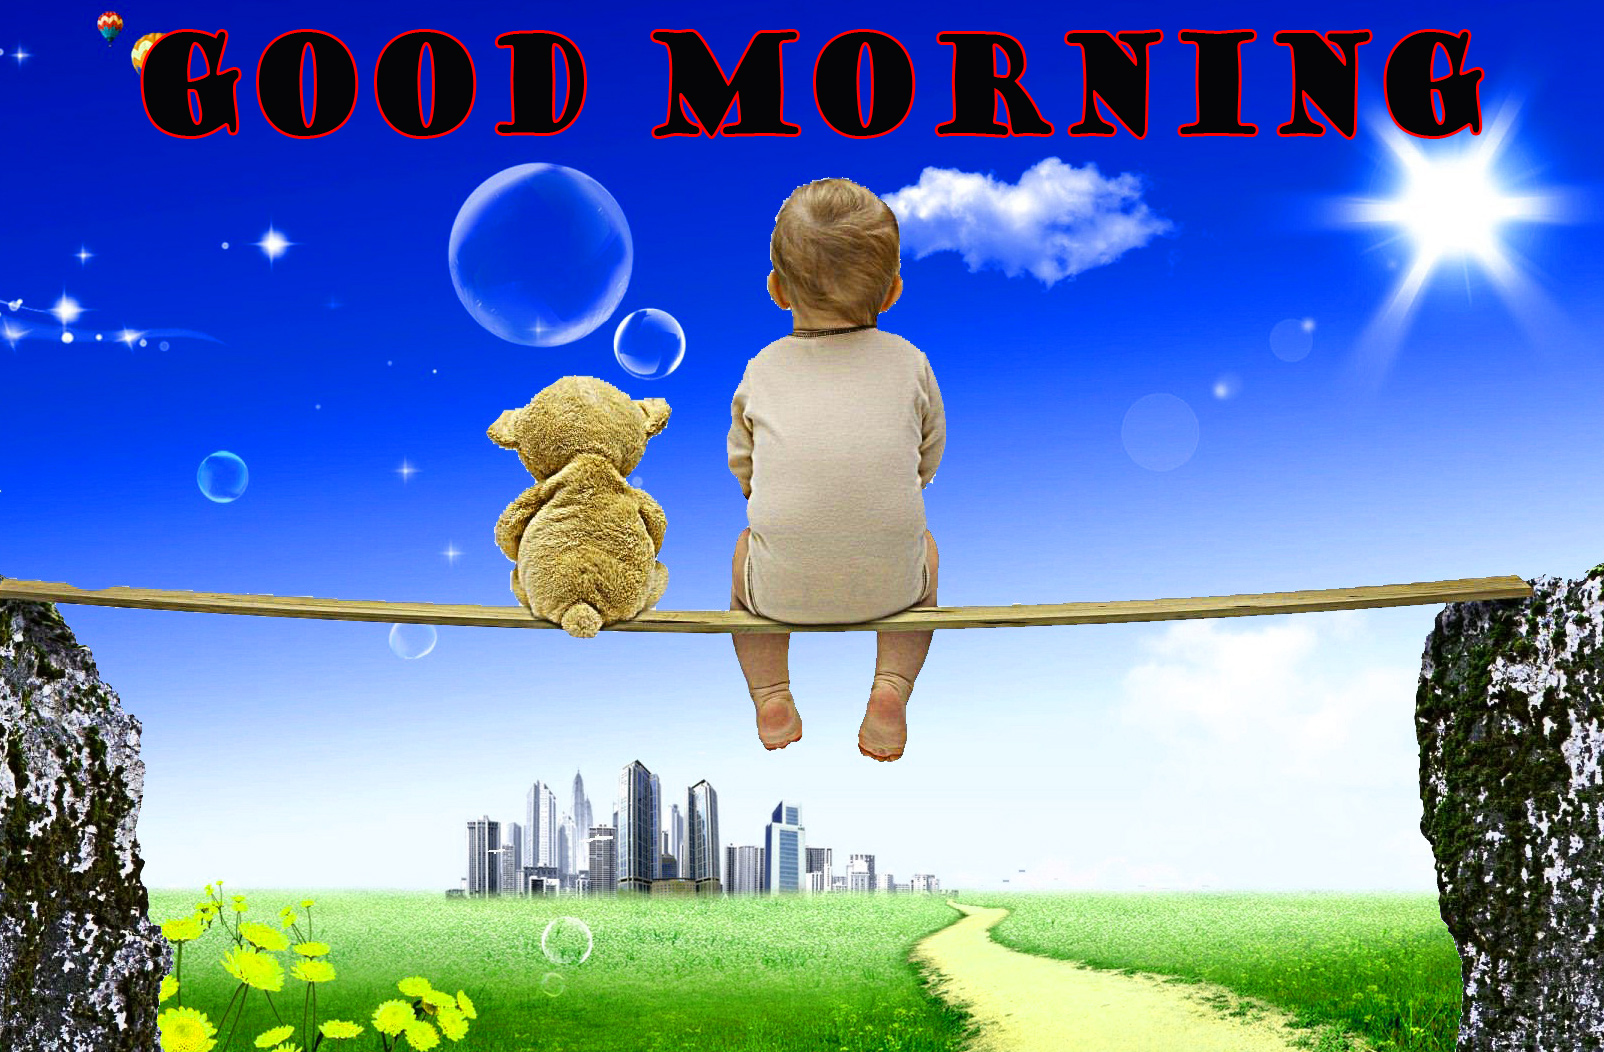 Special Wonderful Good Morning Wallpaper Pictures Images HD